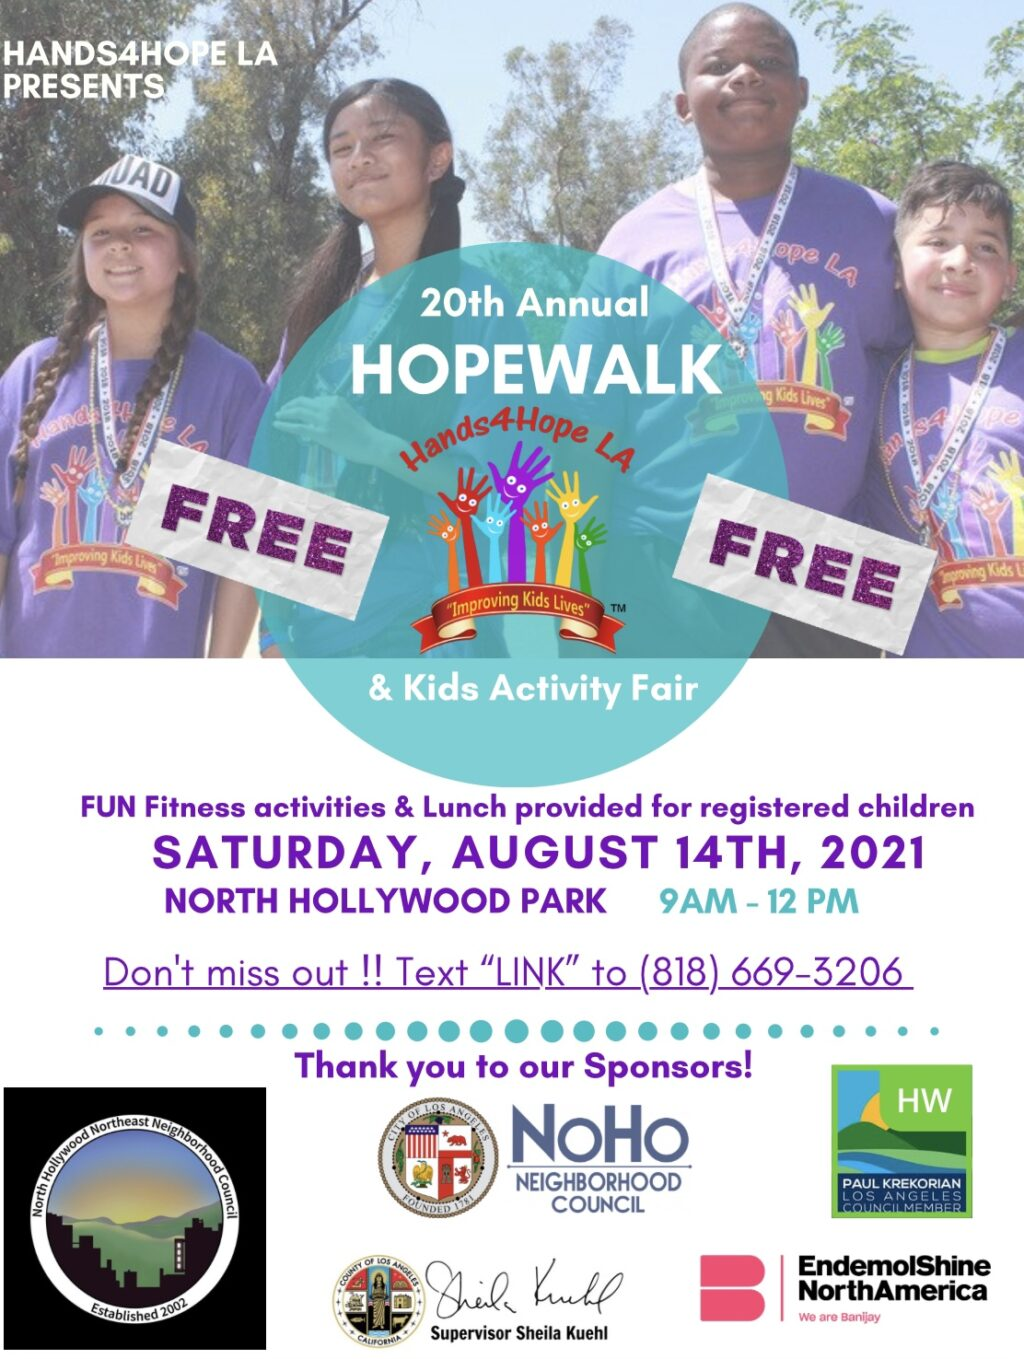 Hands4Hope LA's 20th annual HopeWalk Kid's Healthy Activity Fair to benefit free after-school programs for at-risk youth in North Hollywood.